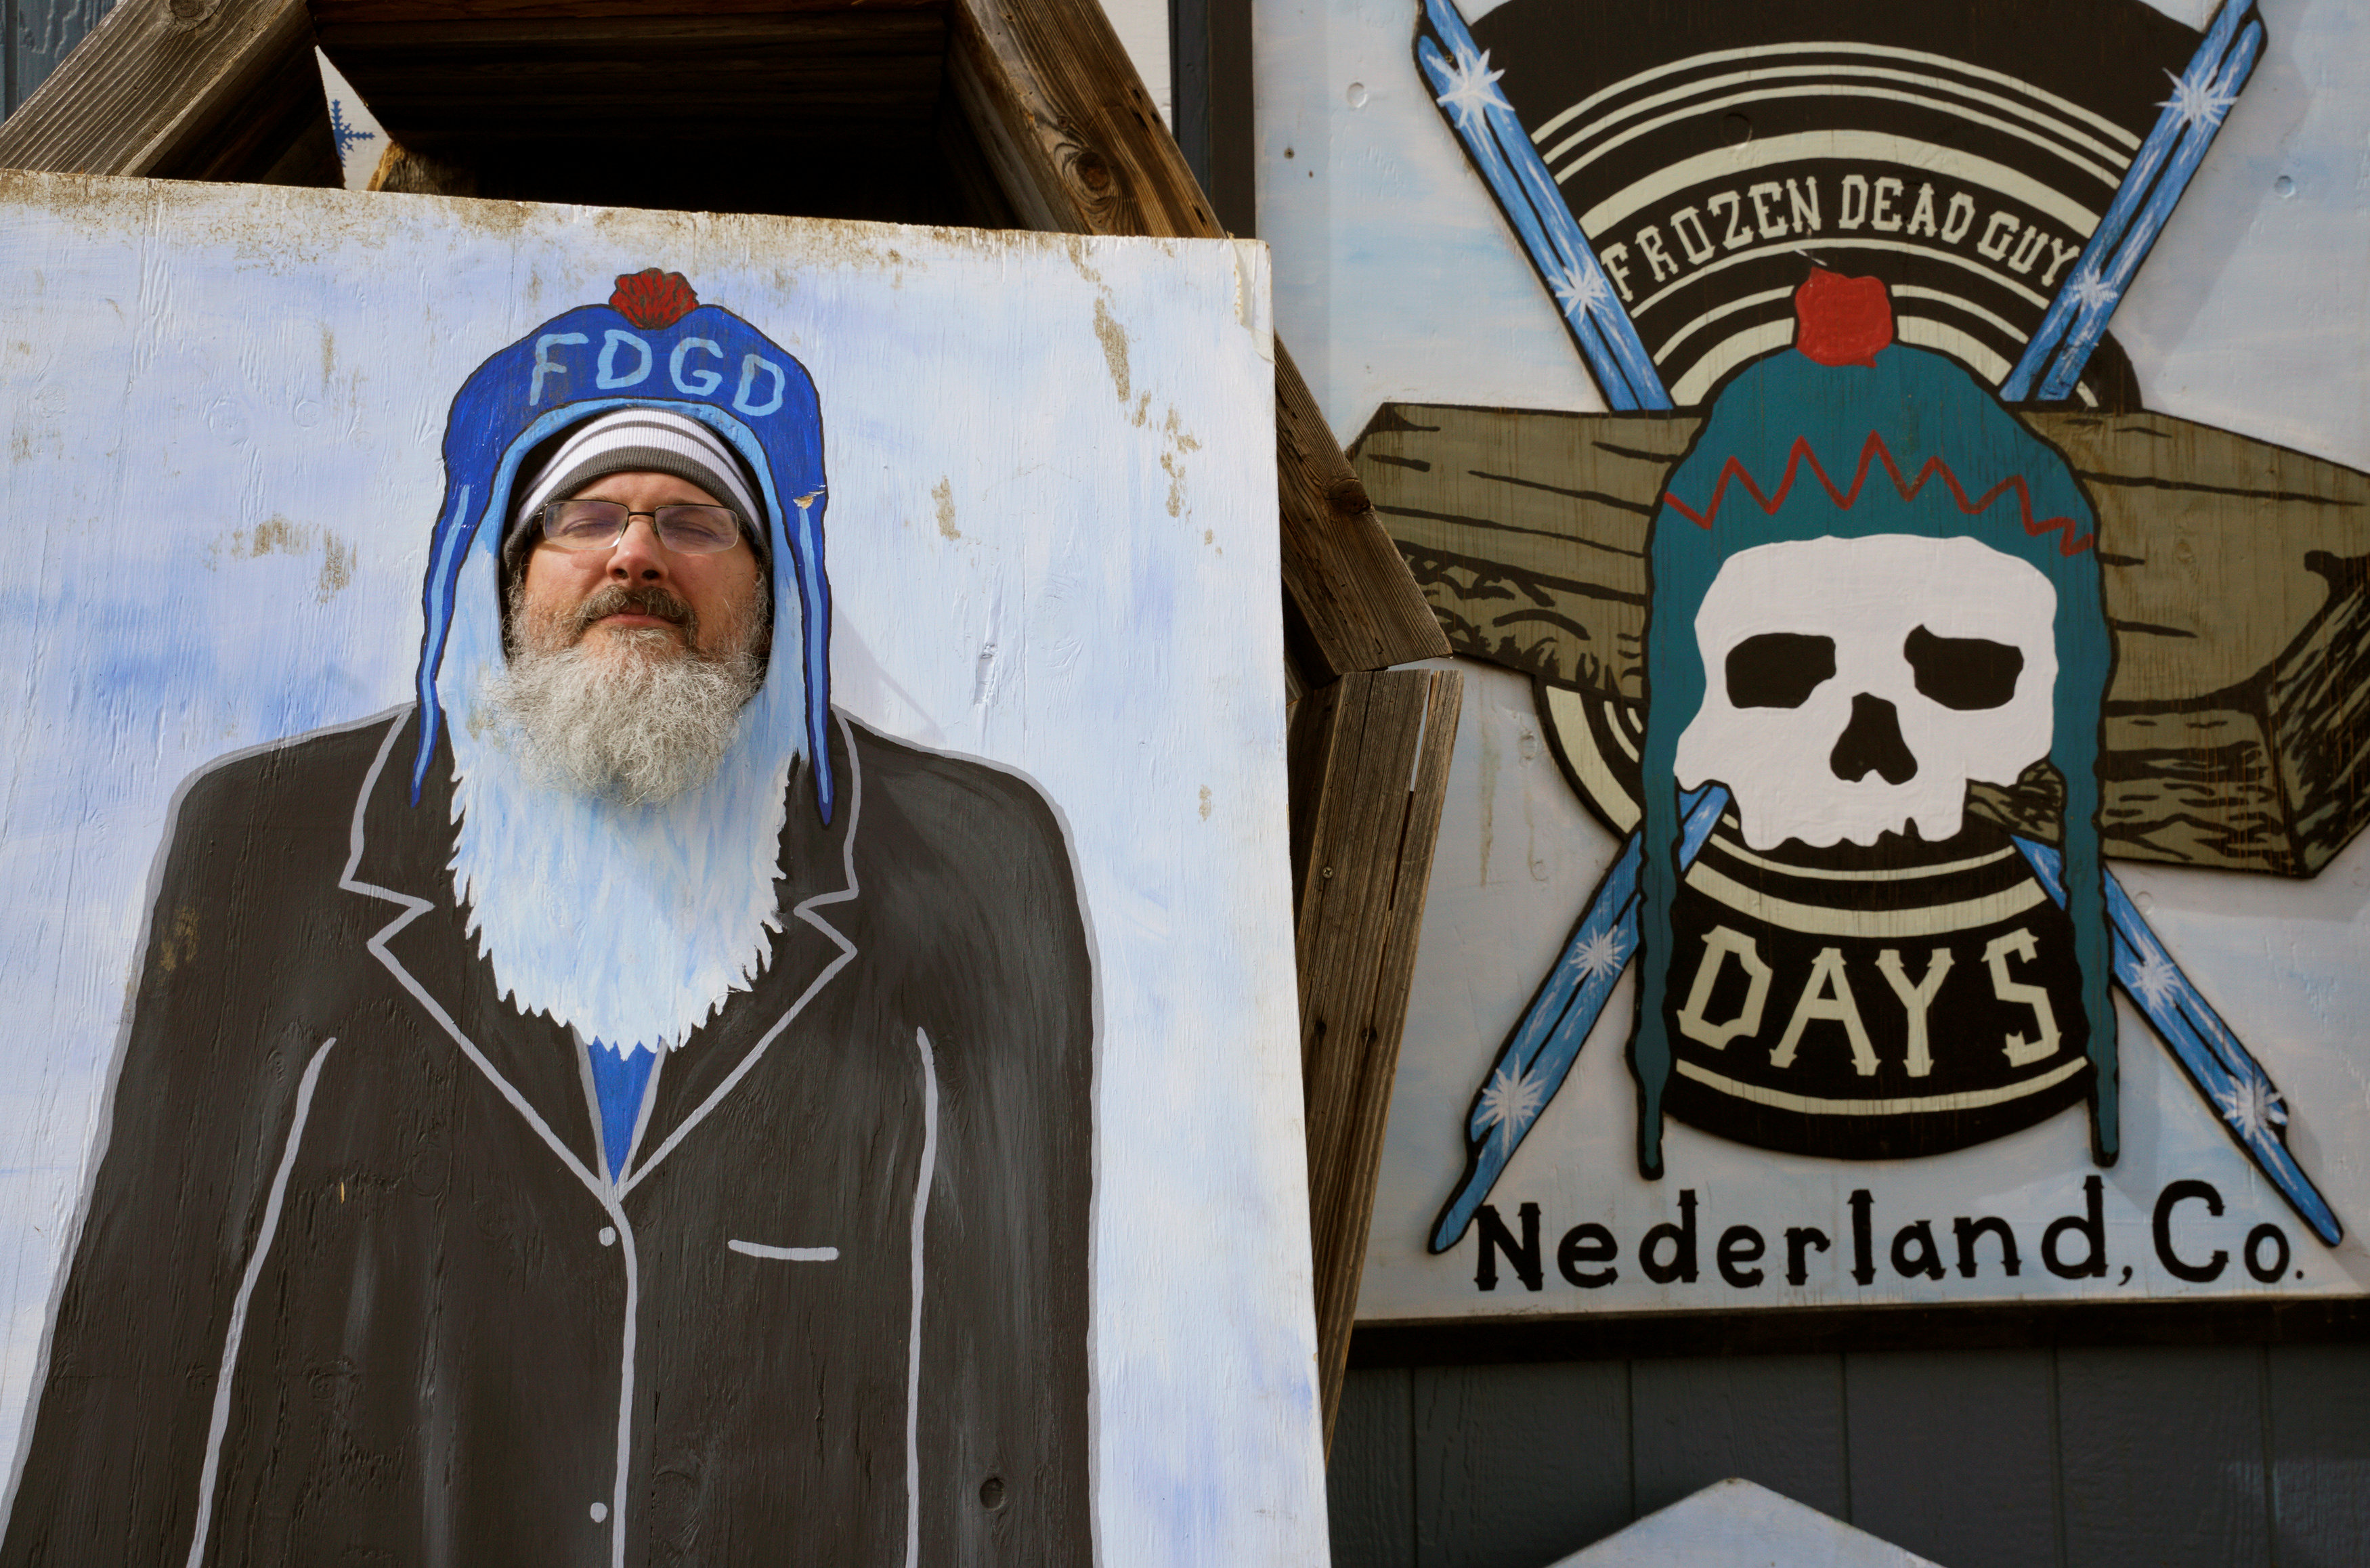 """Kevin Weller poses in a cutout of the frozen corpse that inspired the annual """"Frozen Dead Guy Days"""" festival in Nederland, Colorado, U.S., March 11, 2017. REUTERS/Rick Wilking"""